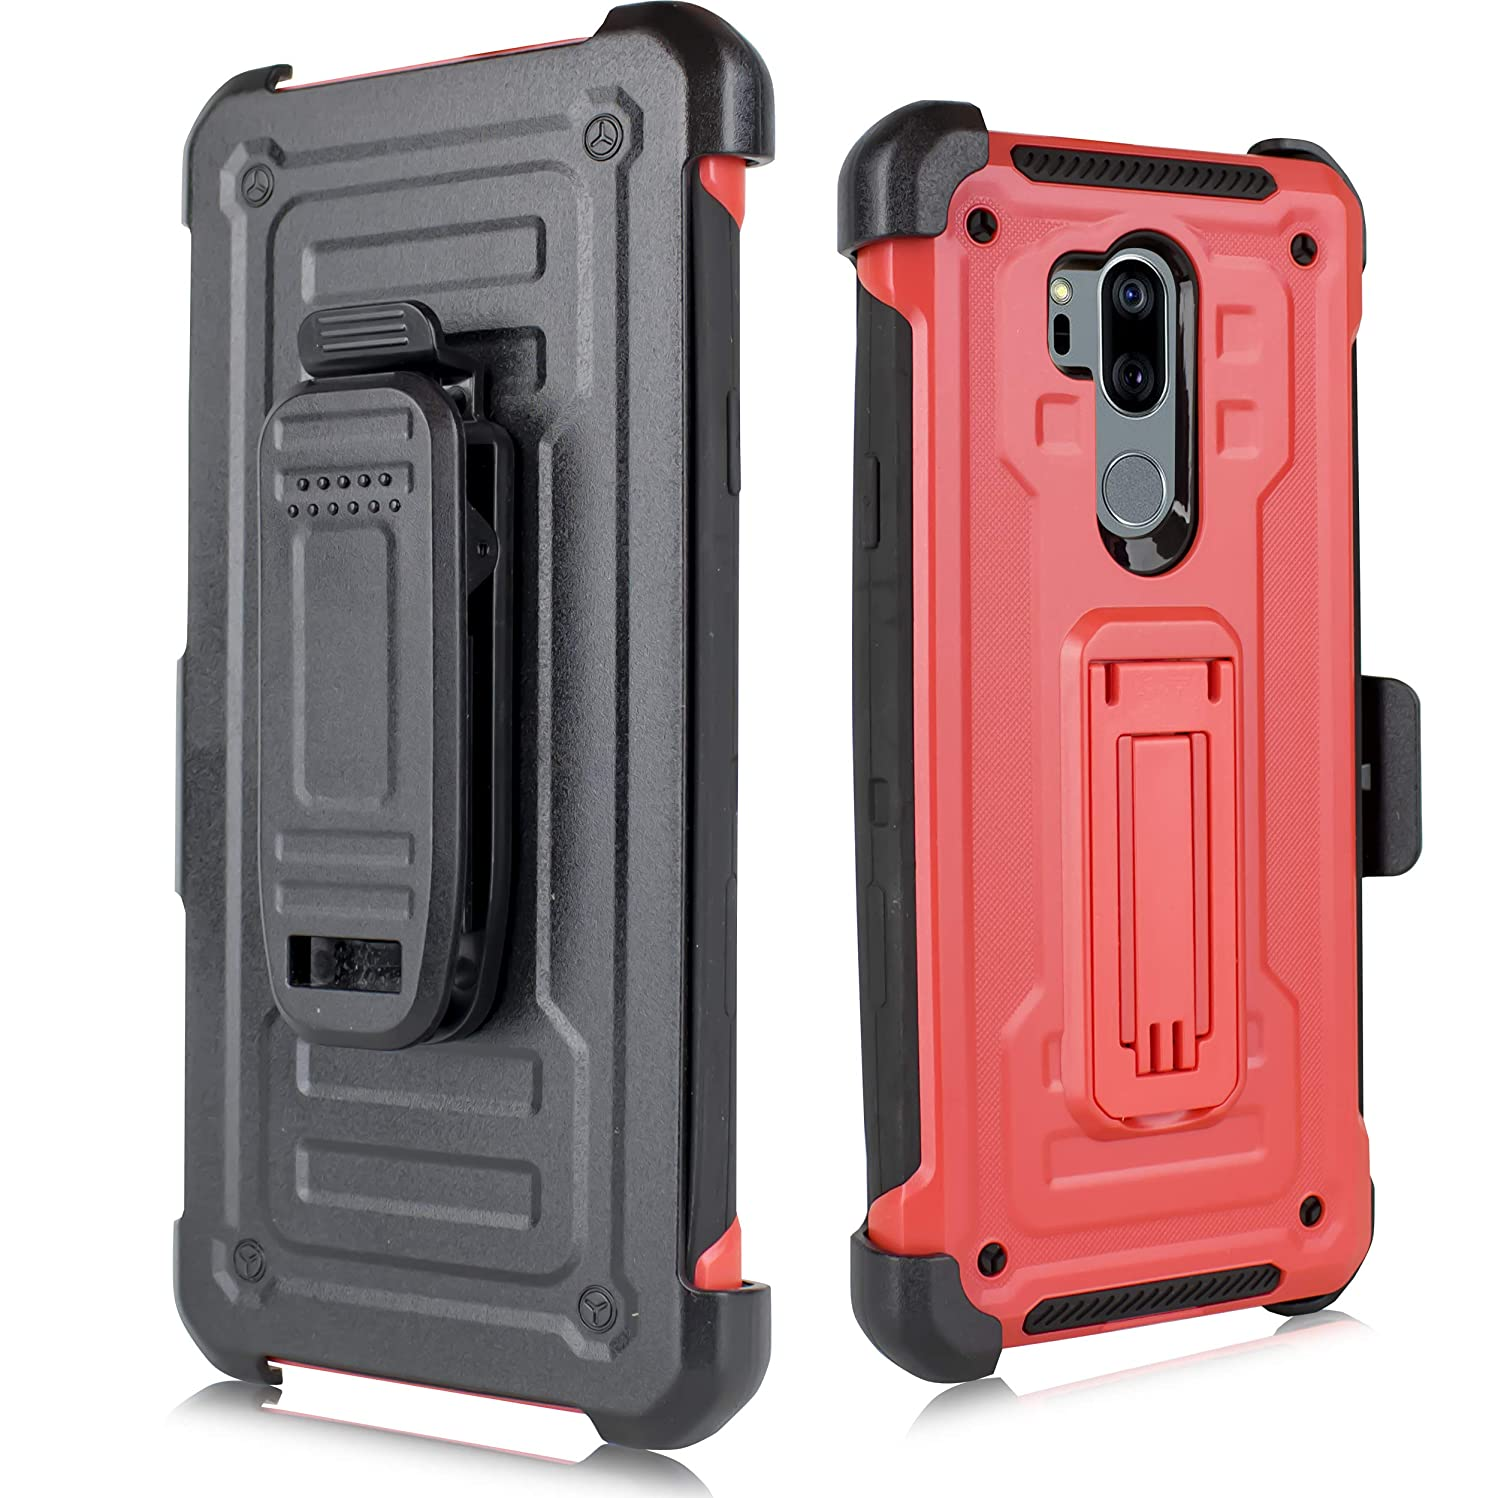 LG G7 ThinQ Case, LG G7 Phone Case, Heavy Duty Shockproof Hybrid Full-Body Protection Case Cover Swivel Belt Clip Kickstand LG G7+ ThinQ/LG LM-G710 (Red)